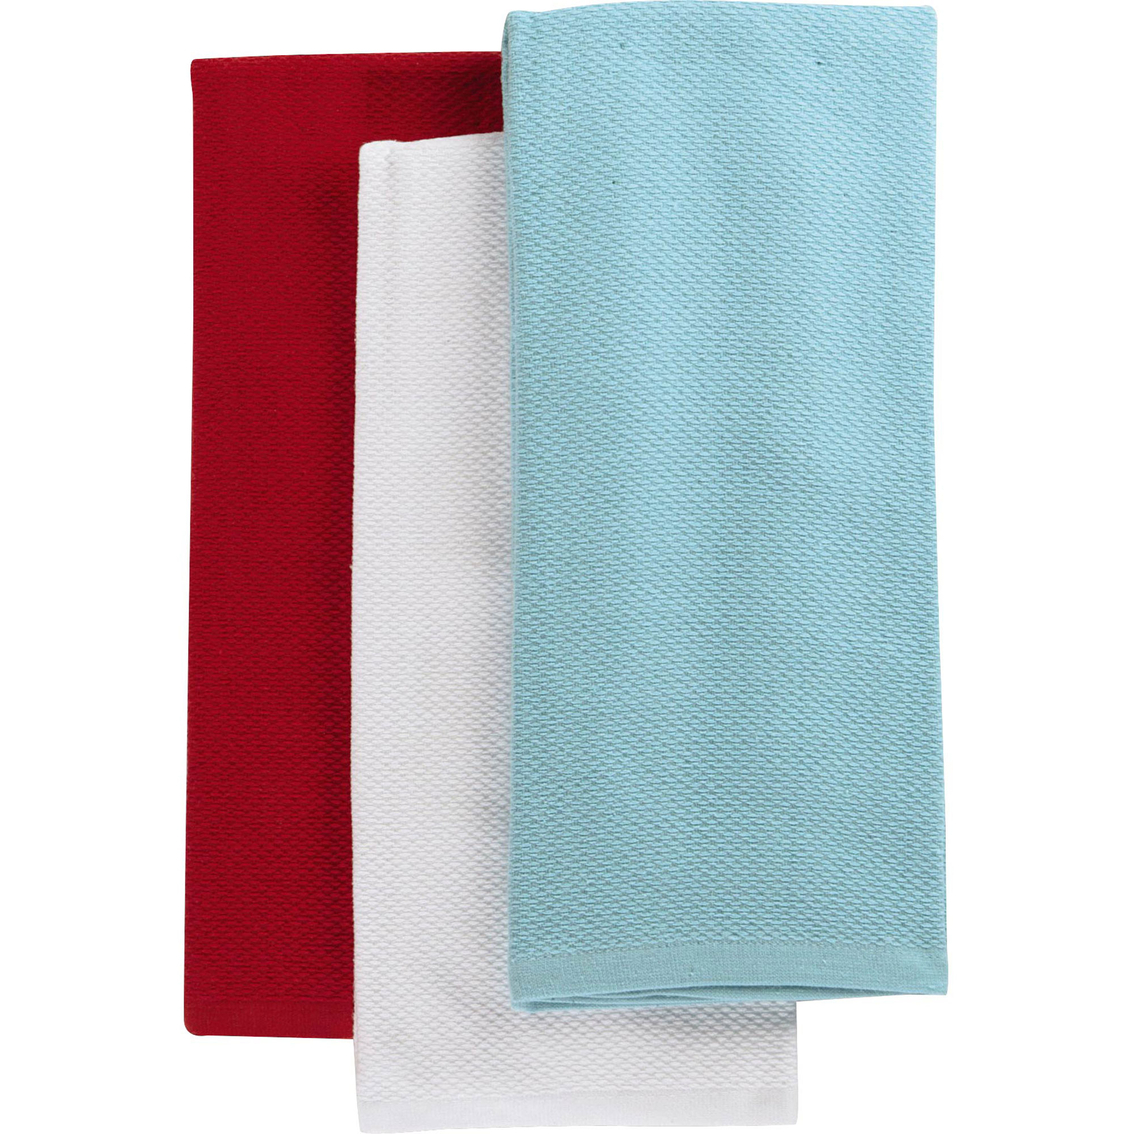 martha stewart kitchen towels can lights collection 3 pc pique towel set